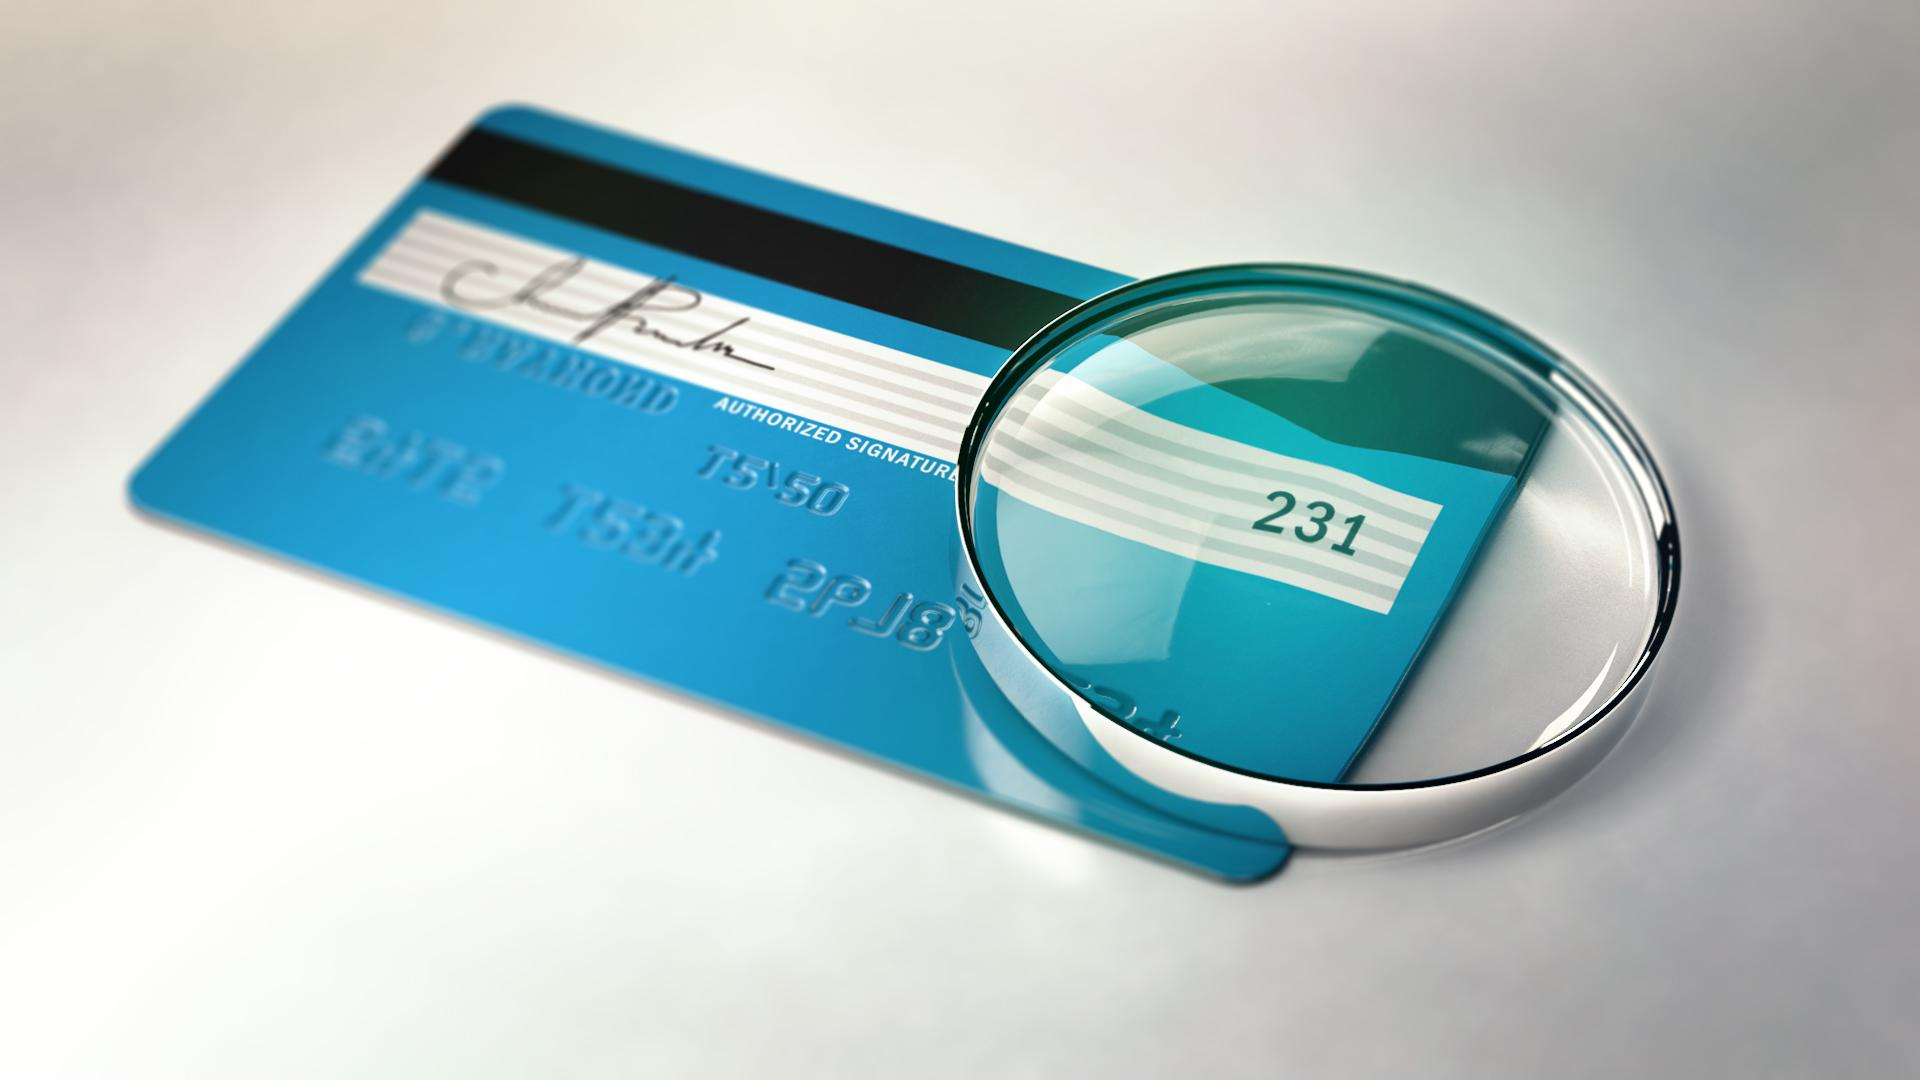 How to Find Credit Card CVV Number?